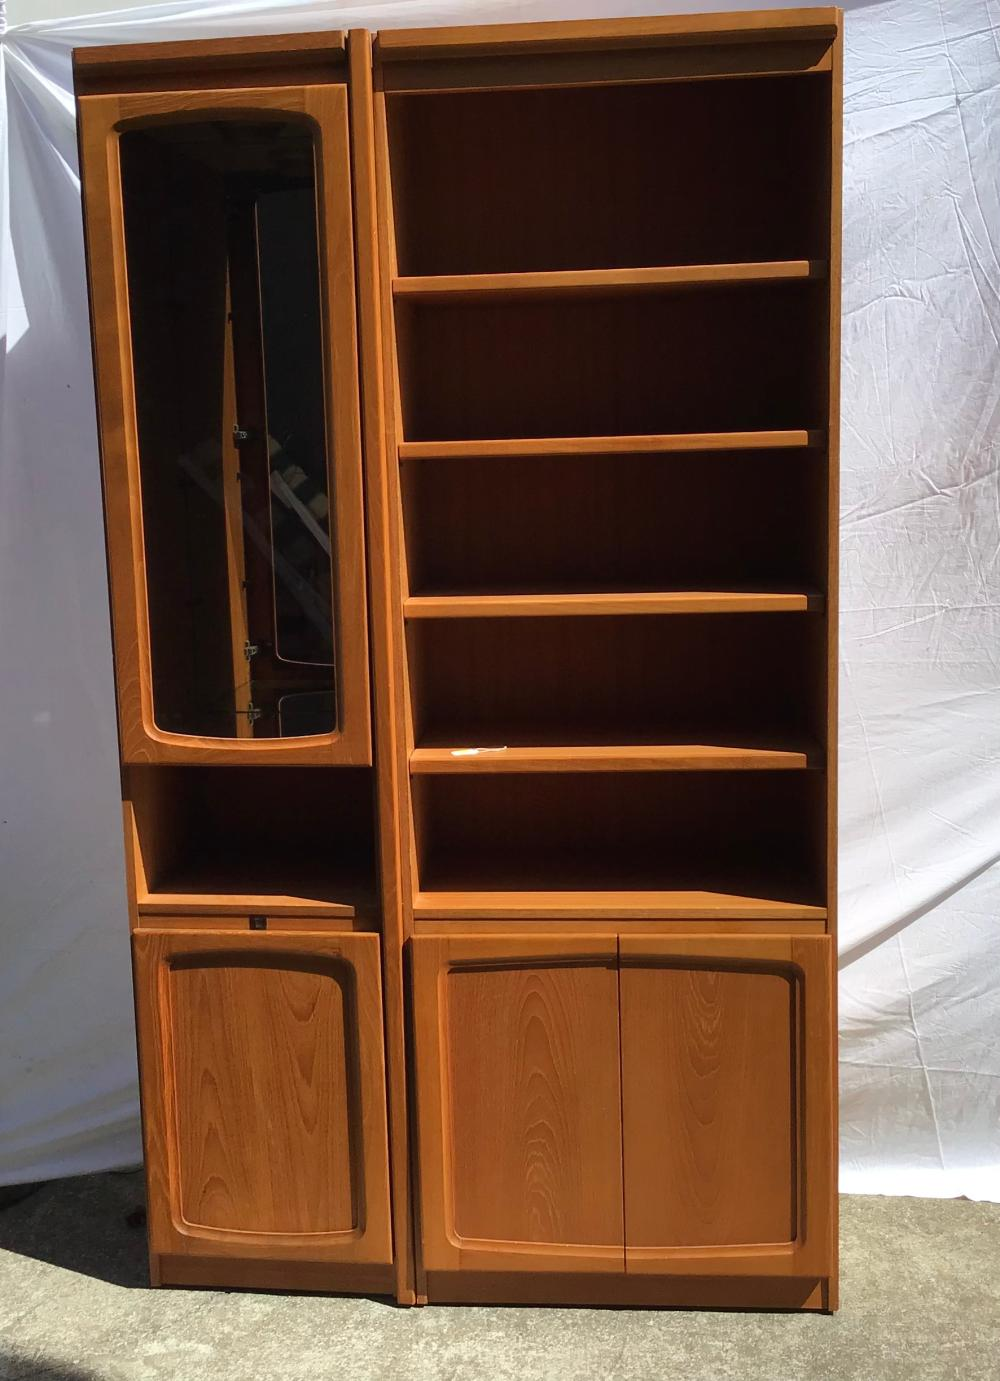 """MCM Mid Century Modern """"Chiswell"""" Display Units- 2 Pieces , Made 1983, One Side With Mirrored Background with Glass Shelves,Door & DownLight, the other with Shelves on top & Solid doors below. 205cm H x 130cm L x 40cm W"""